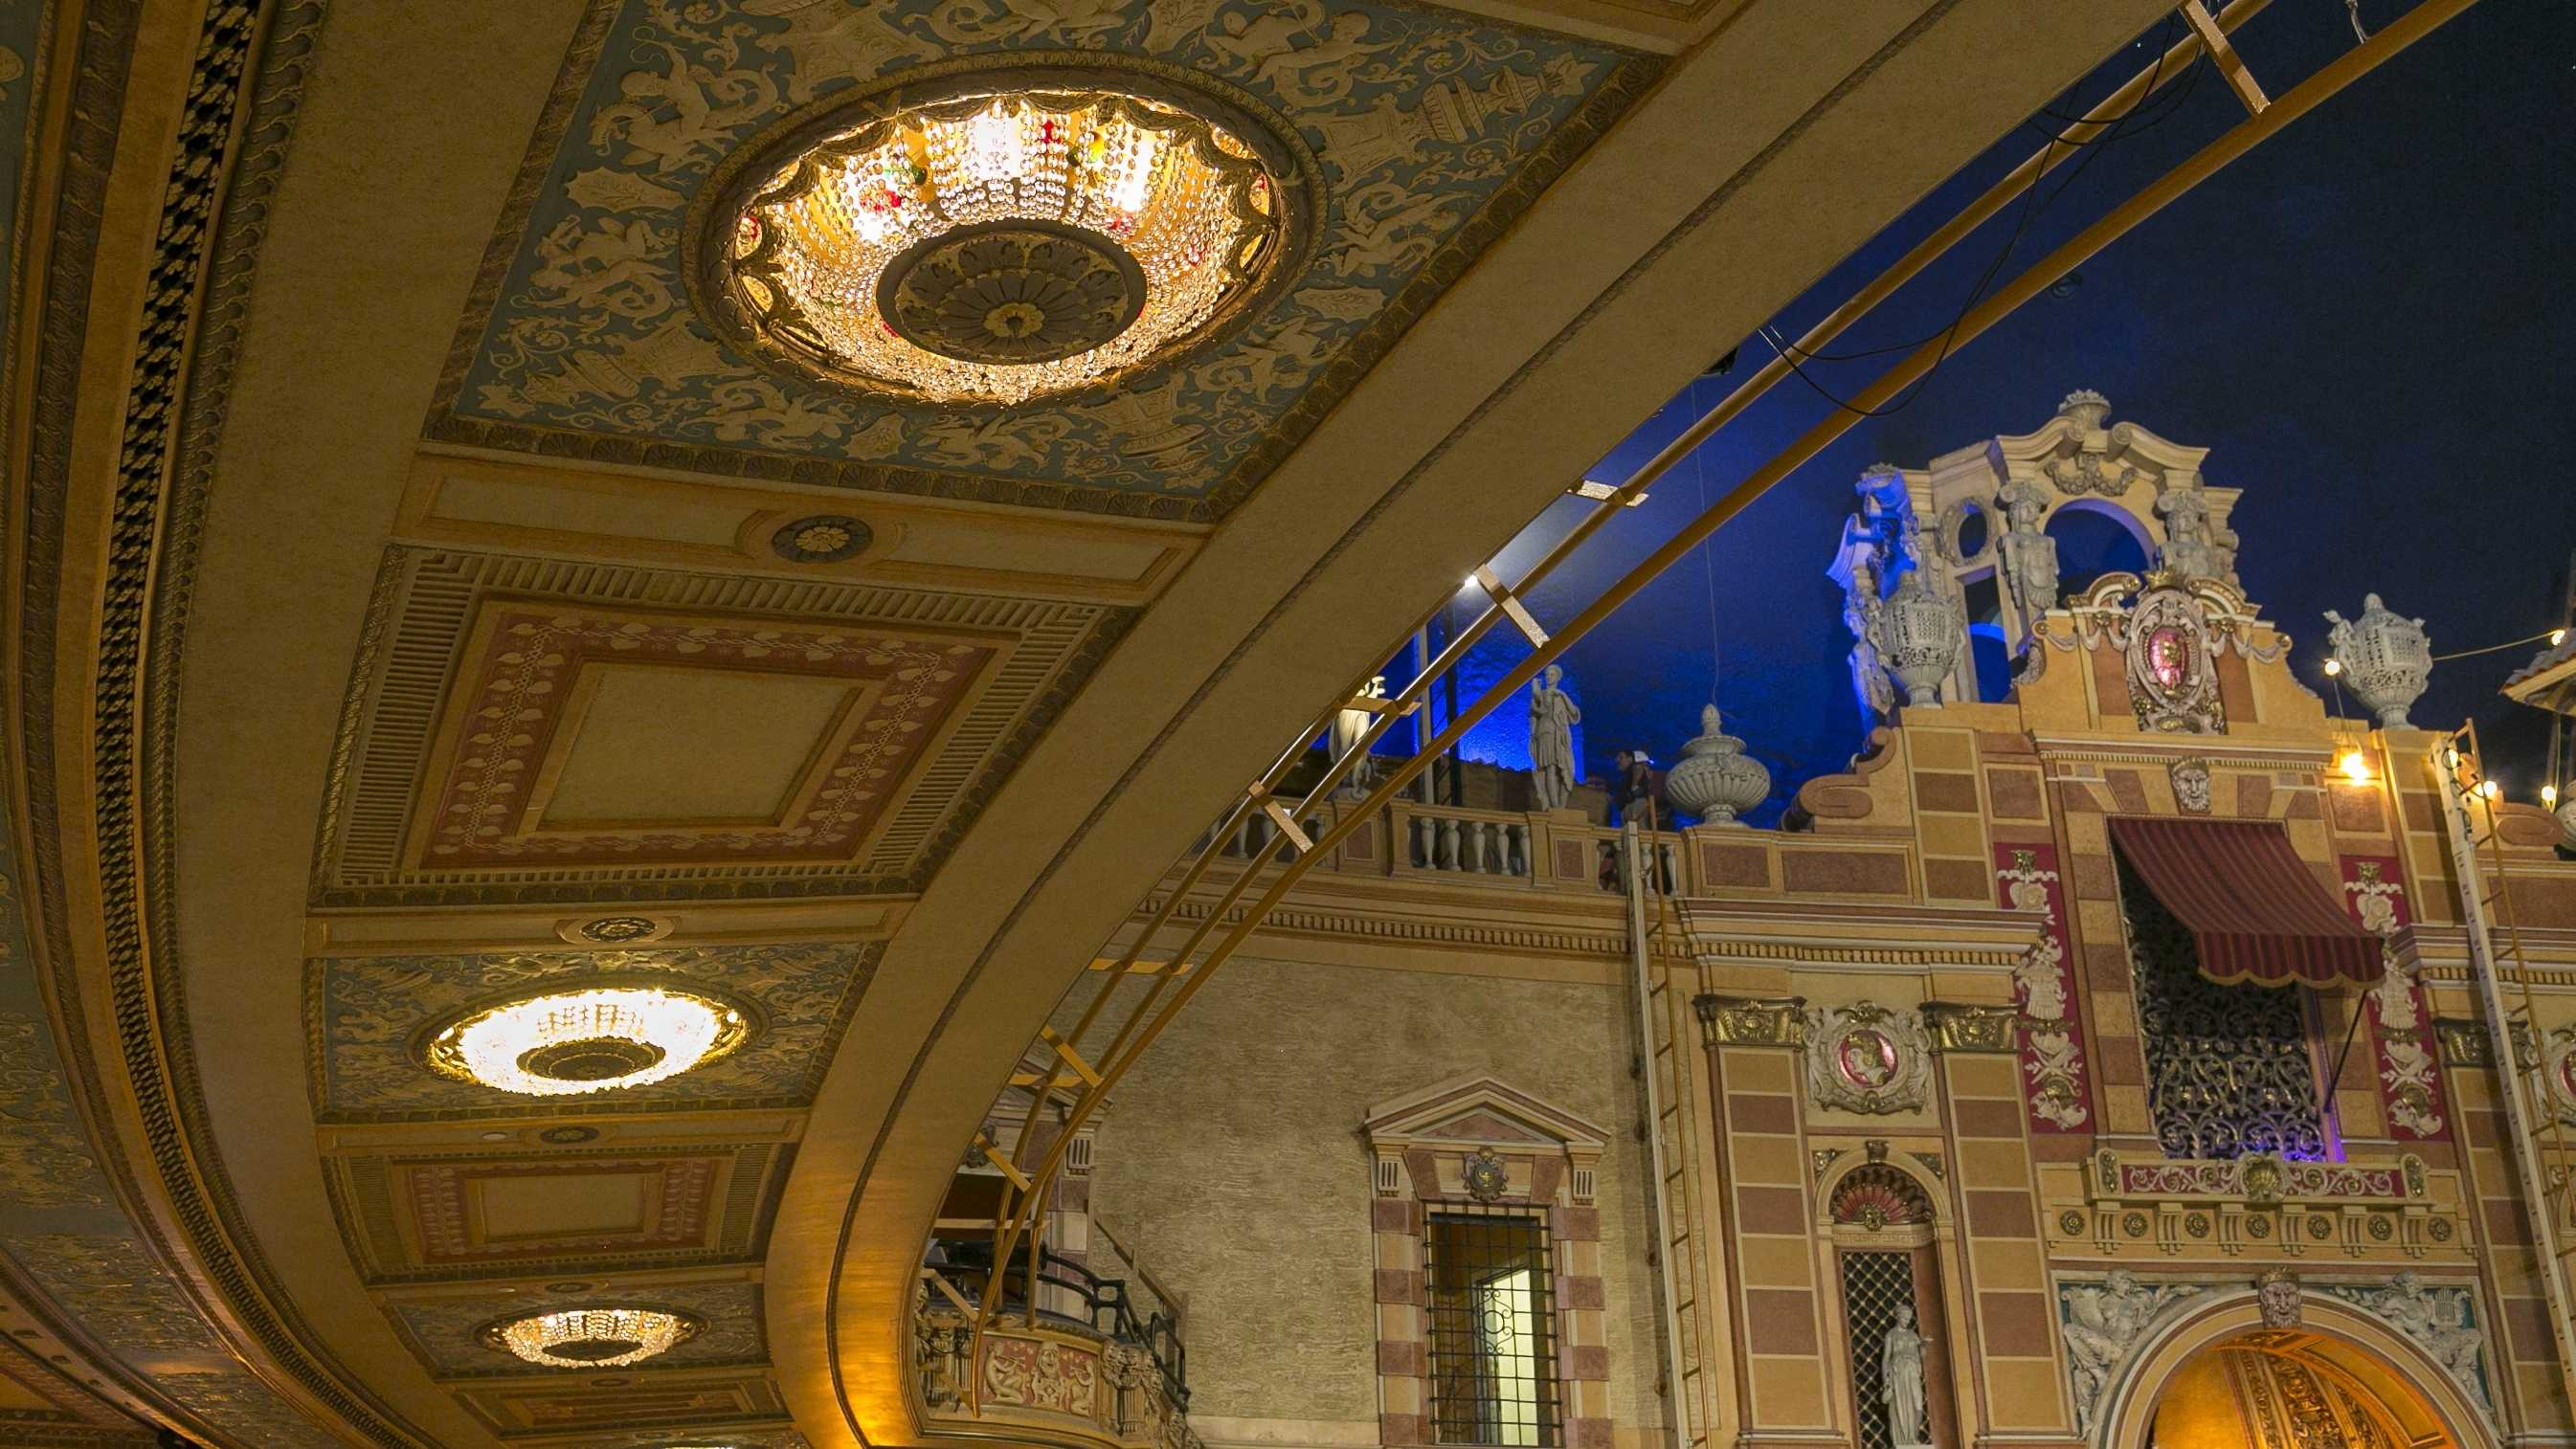 The Saenger Theatre will open its doors for the first time since Hurricane Katrina devastated the playhouse. On its opening night, superstar comedian Jerry Seinfeld will perform at 7 p.m.